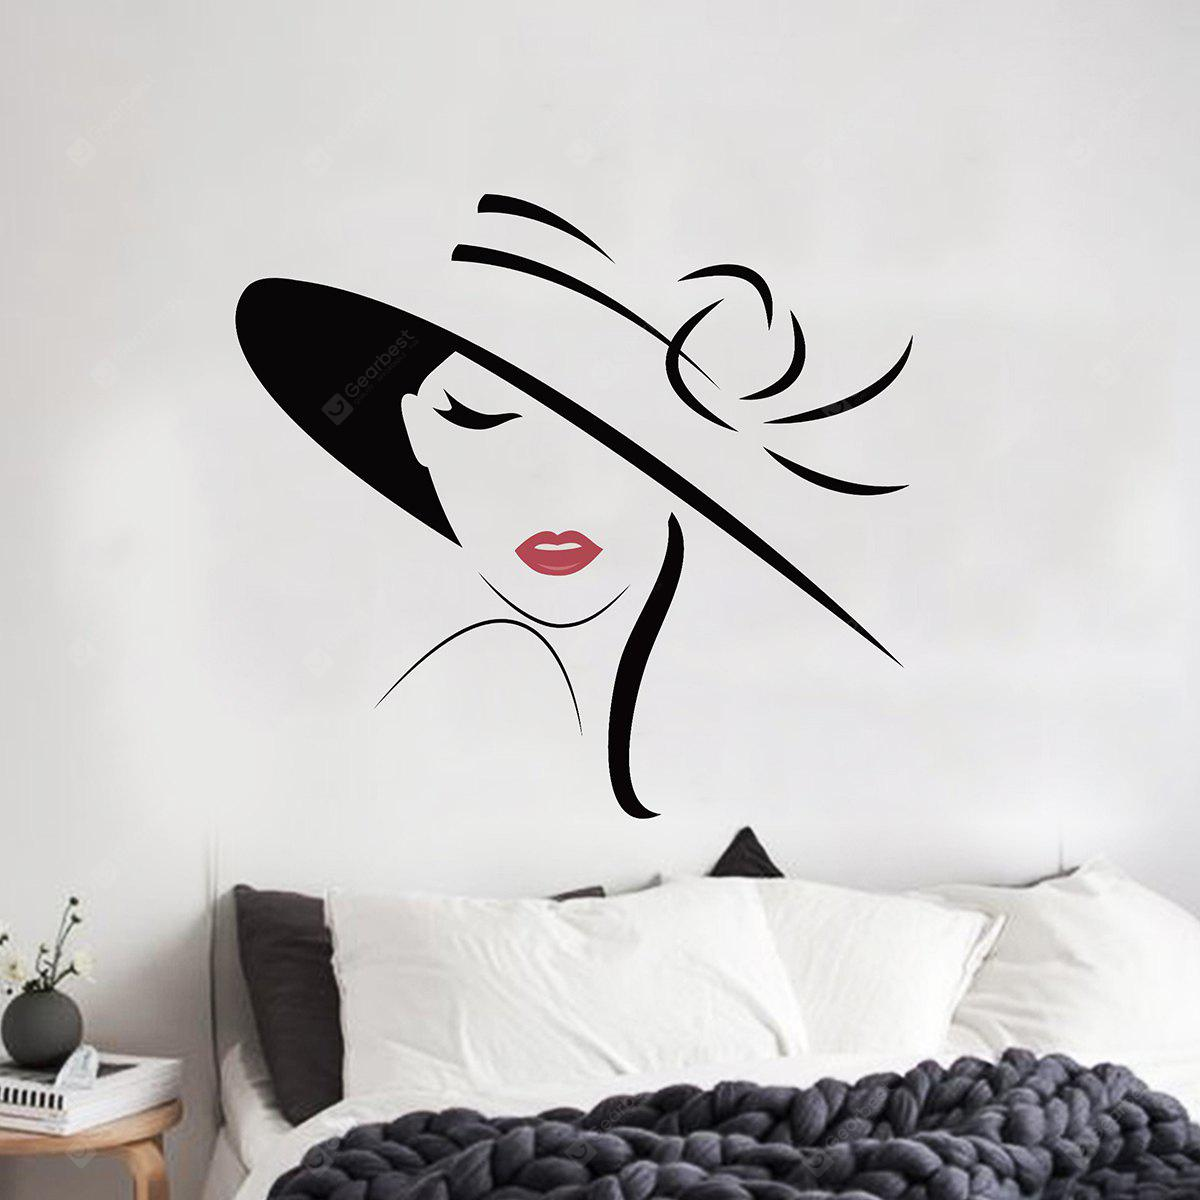 Vinyl Sticker Wall Sticker para quarto